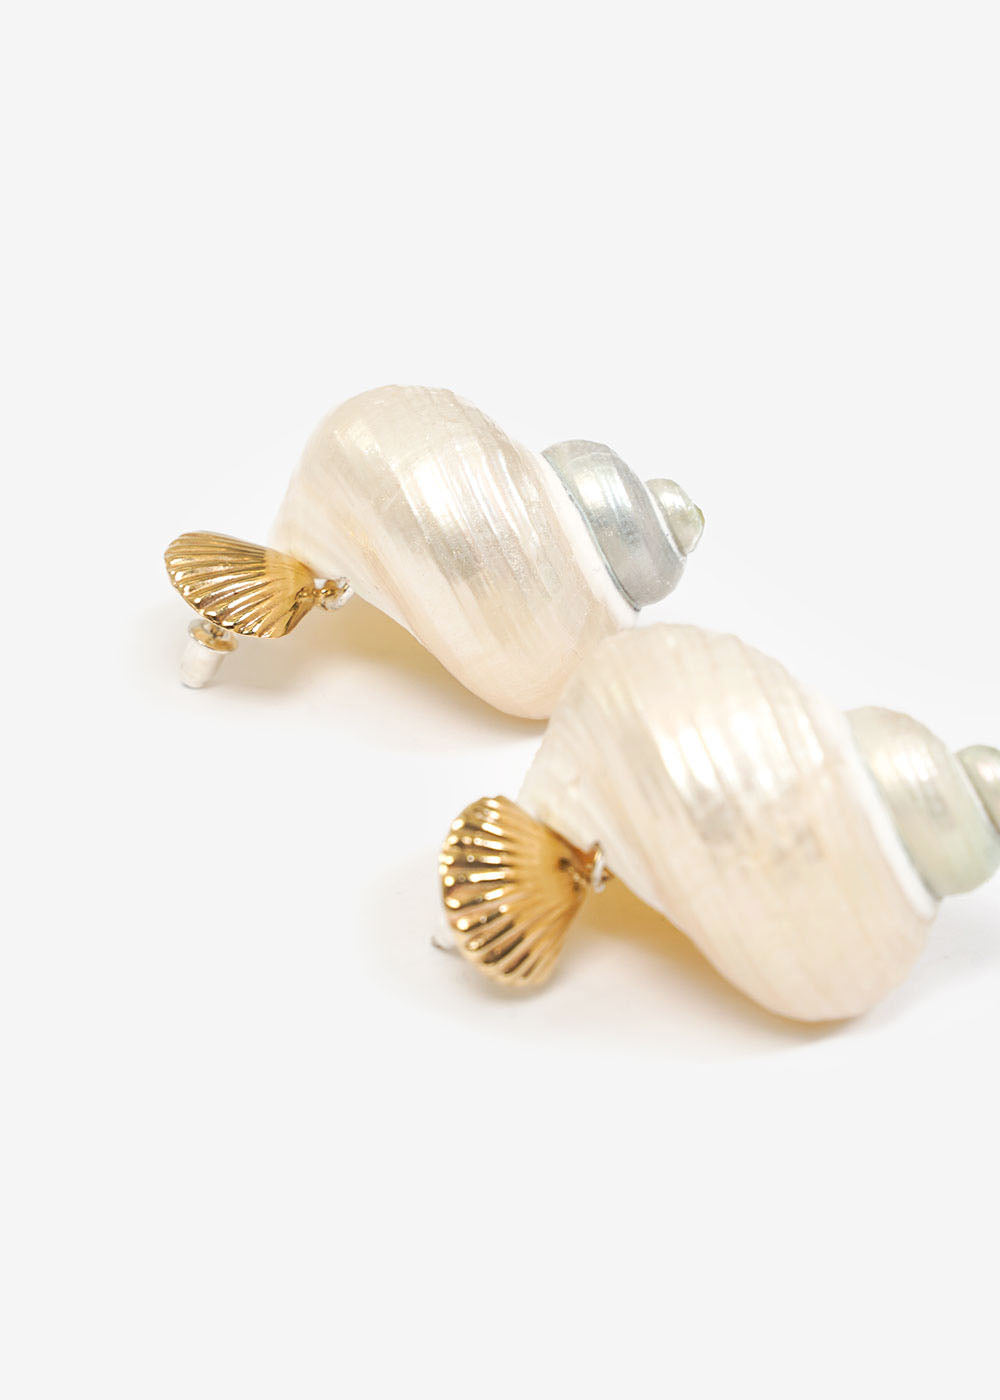 LUINY Concha & Caracol Shell Earrings — Shop sustainable fashion and slow fashion at New Classics Studios